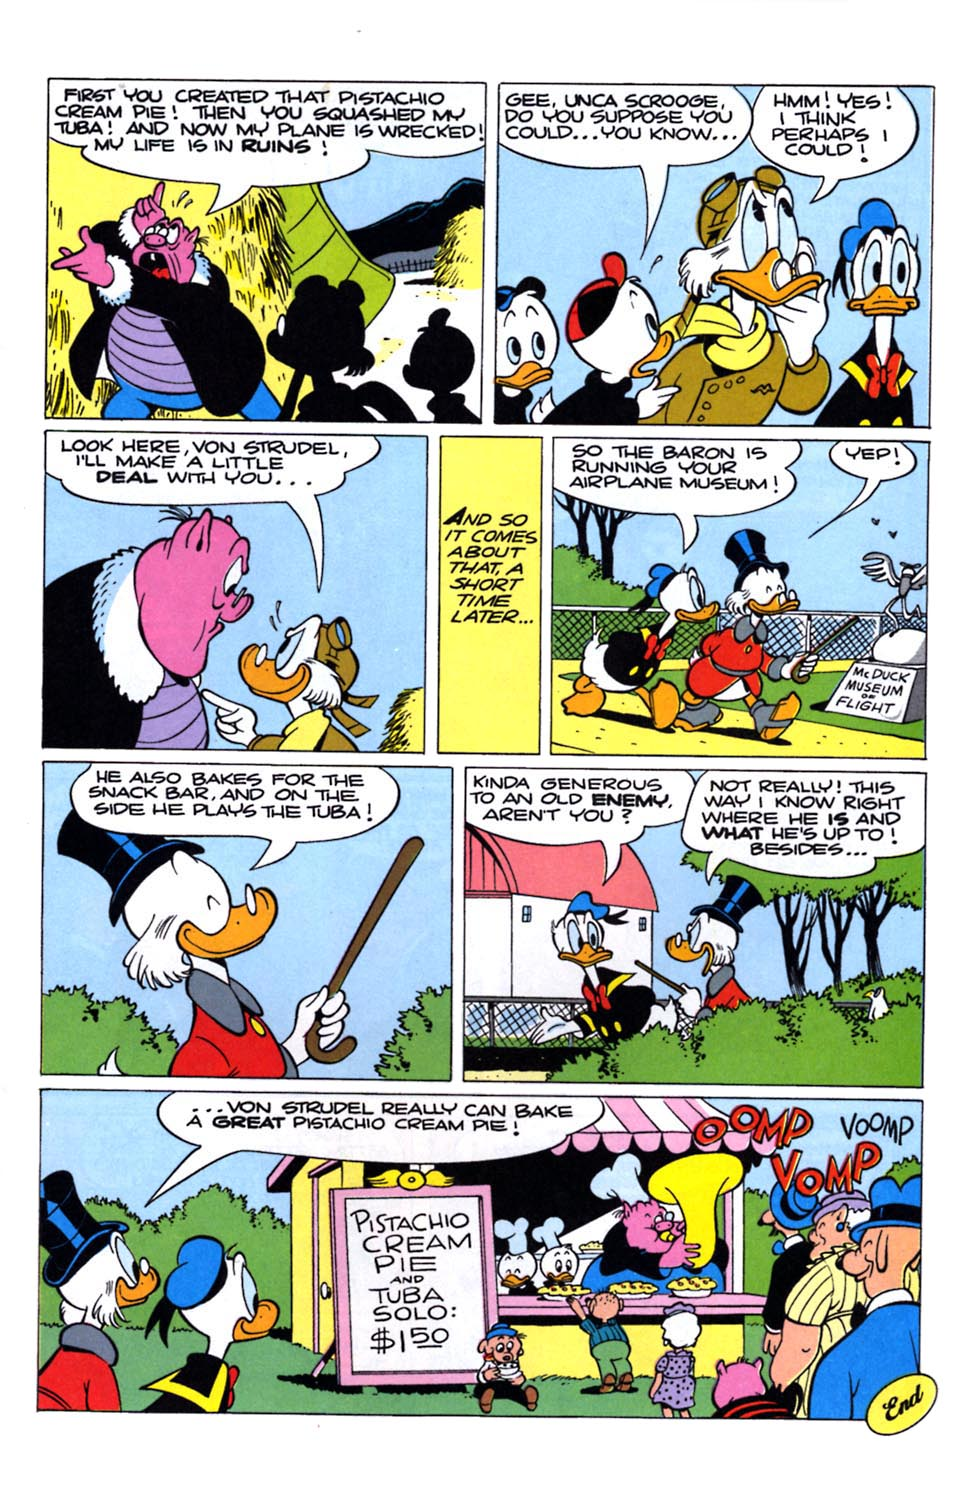 inefree.com/uncle-scrooge #162 - English 16